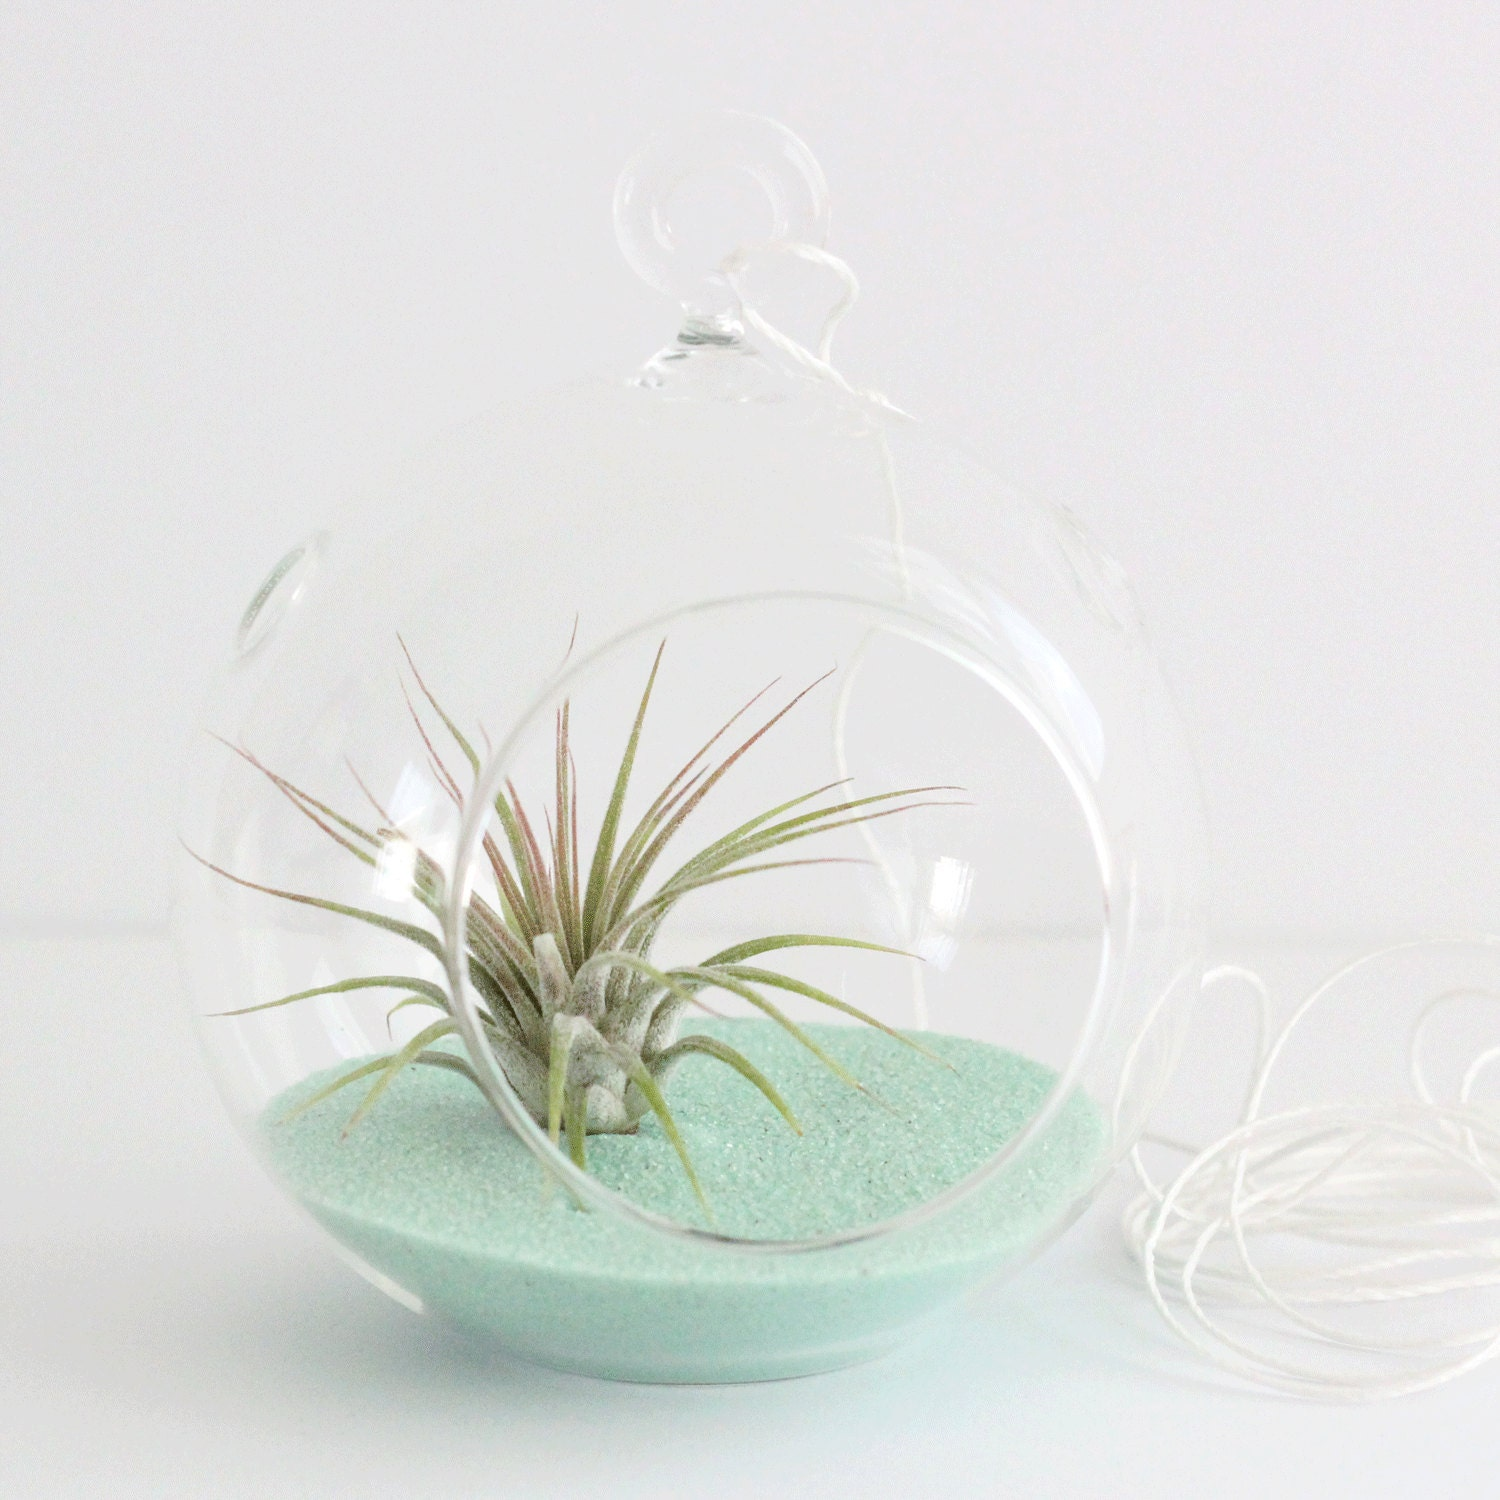 set of 5 air plant terrarium kit with mint sand great for bridesmaids parties and shower gifts